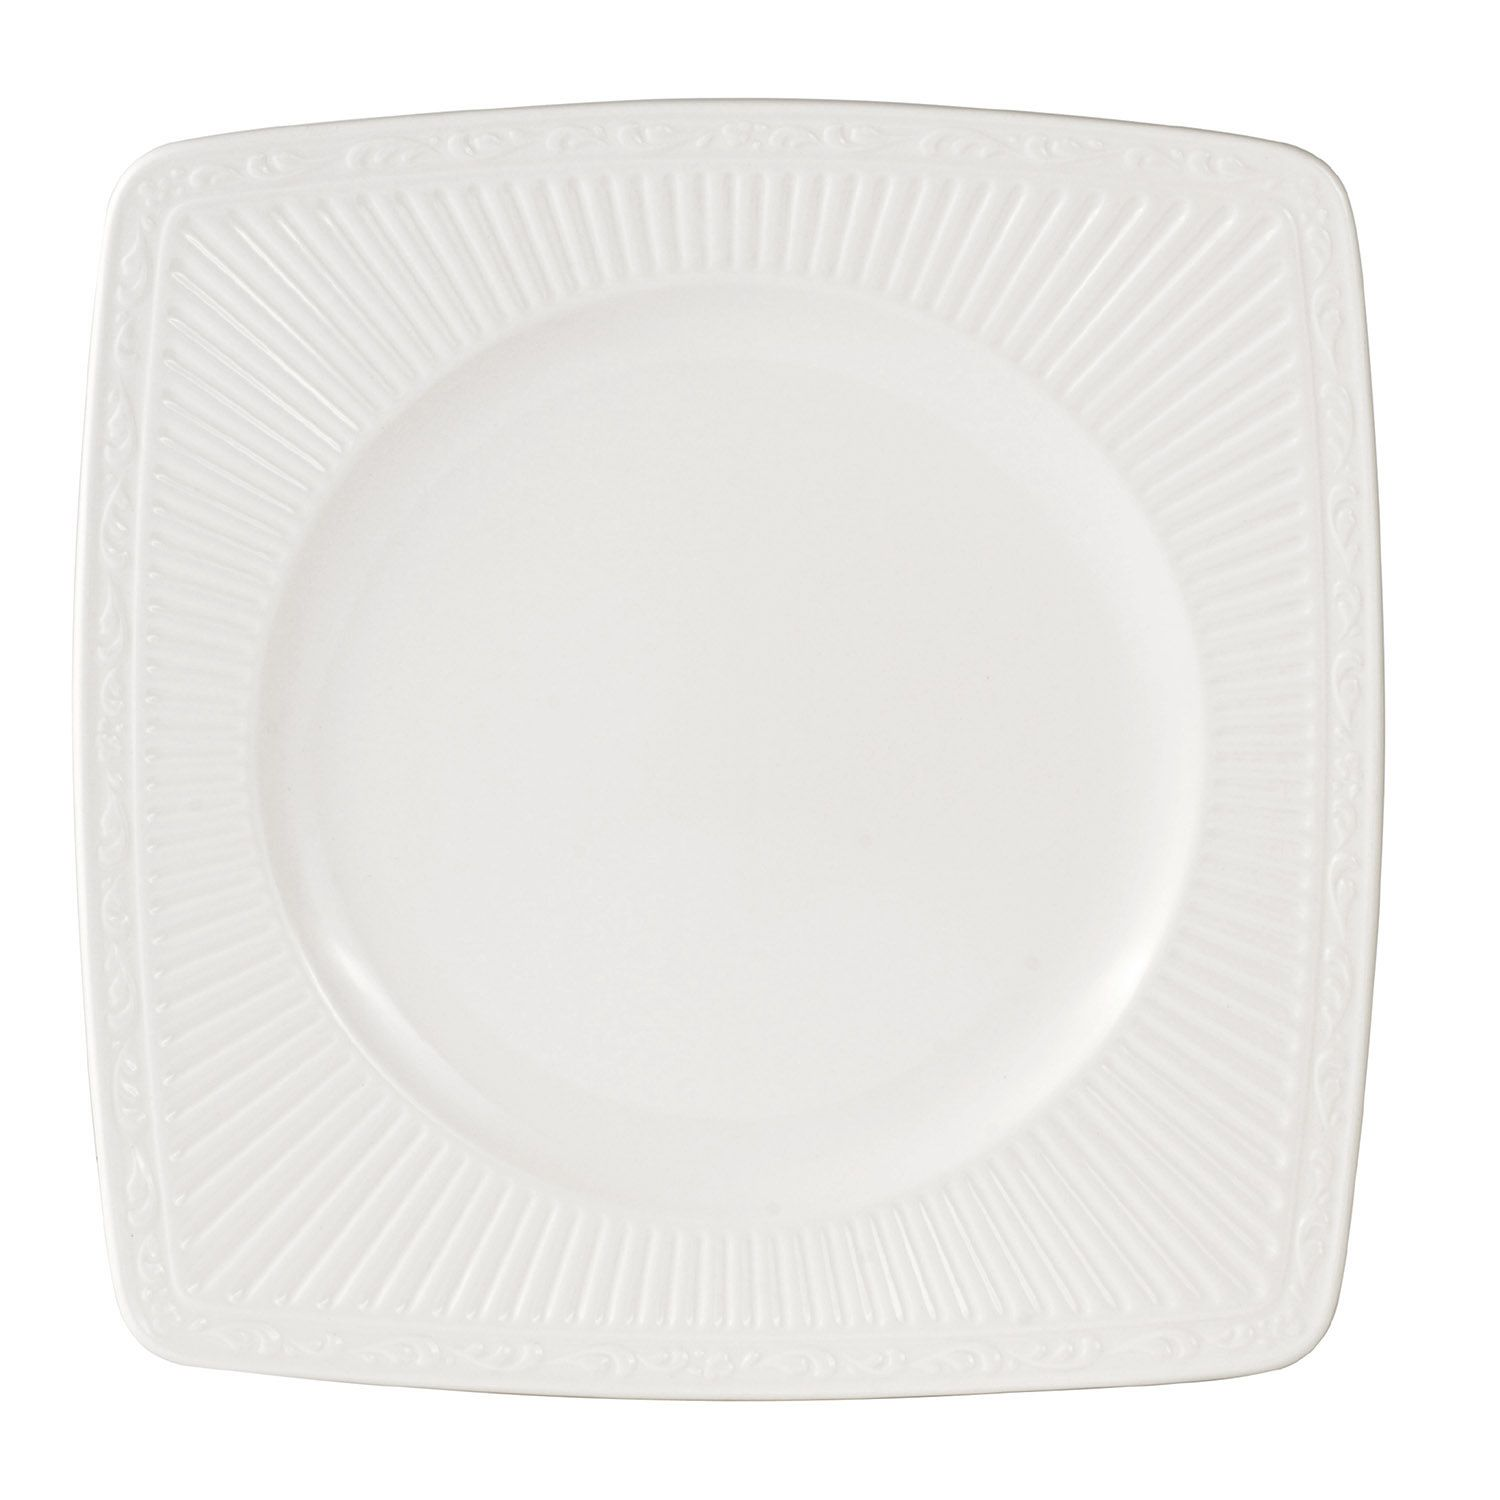 Mikasa Italian Countryside 10.74-in. Square Dinner Plate  sc 1 st  Kohlu0027s & Dinner Plates | Kohlu0027s